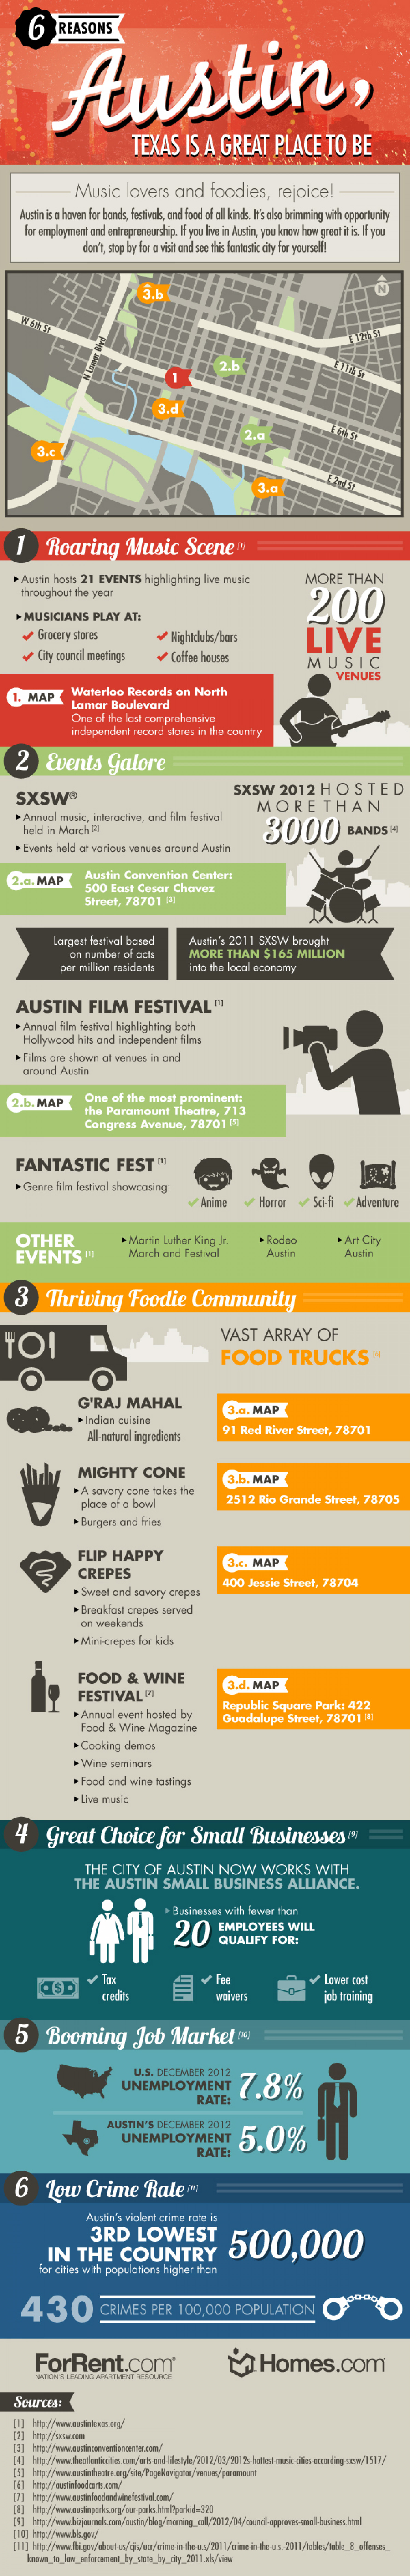 6 Reasons to Live in Austin Infographic